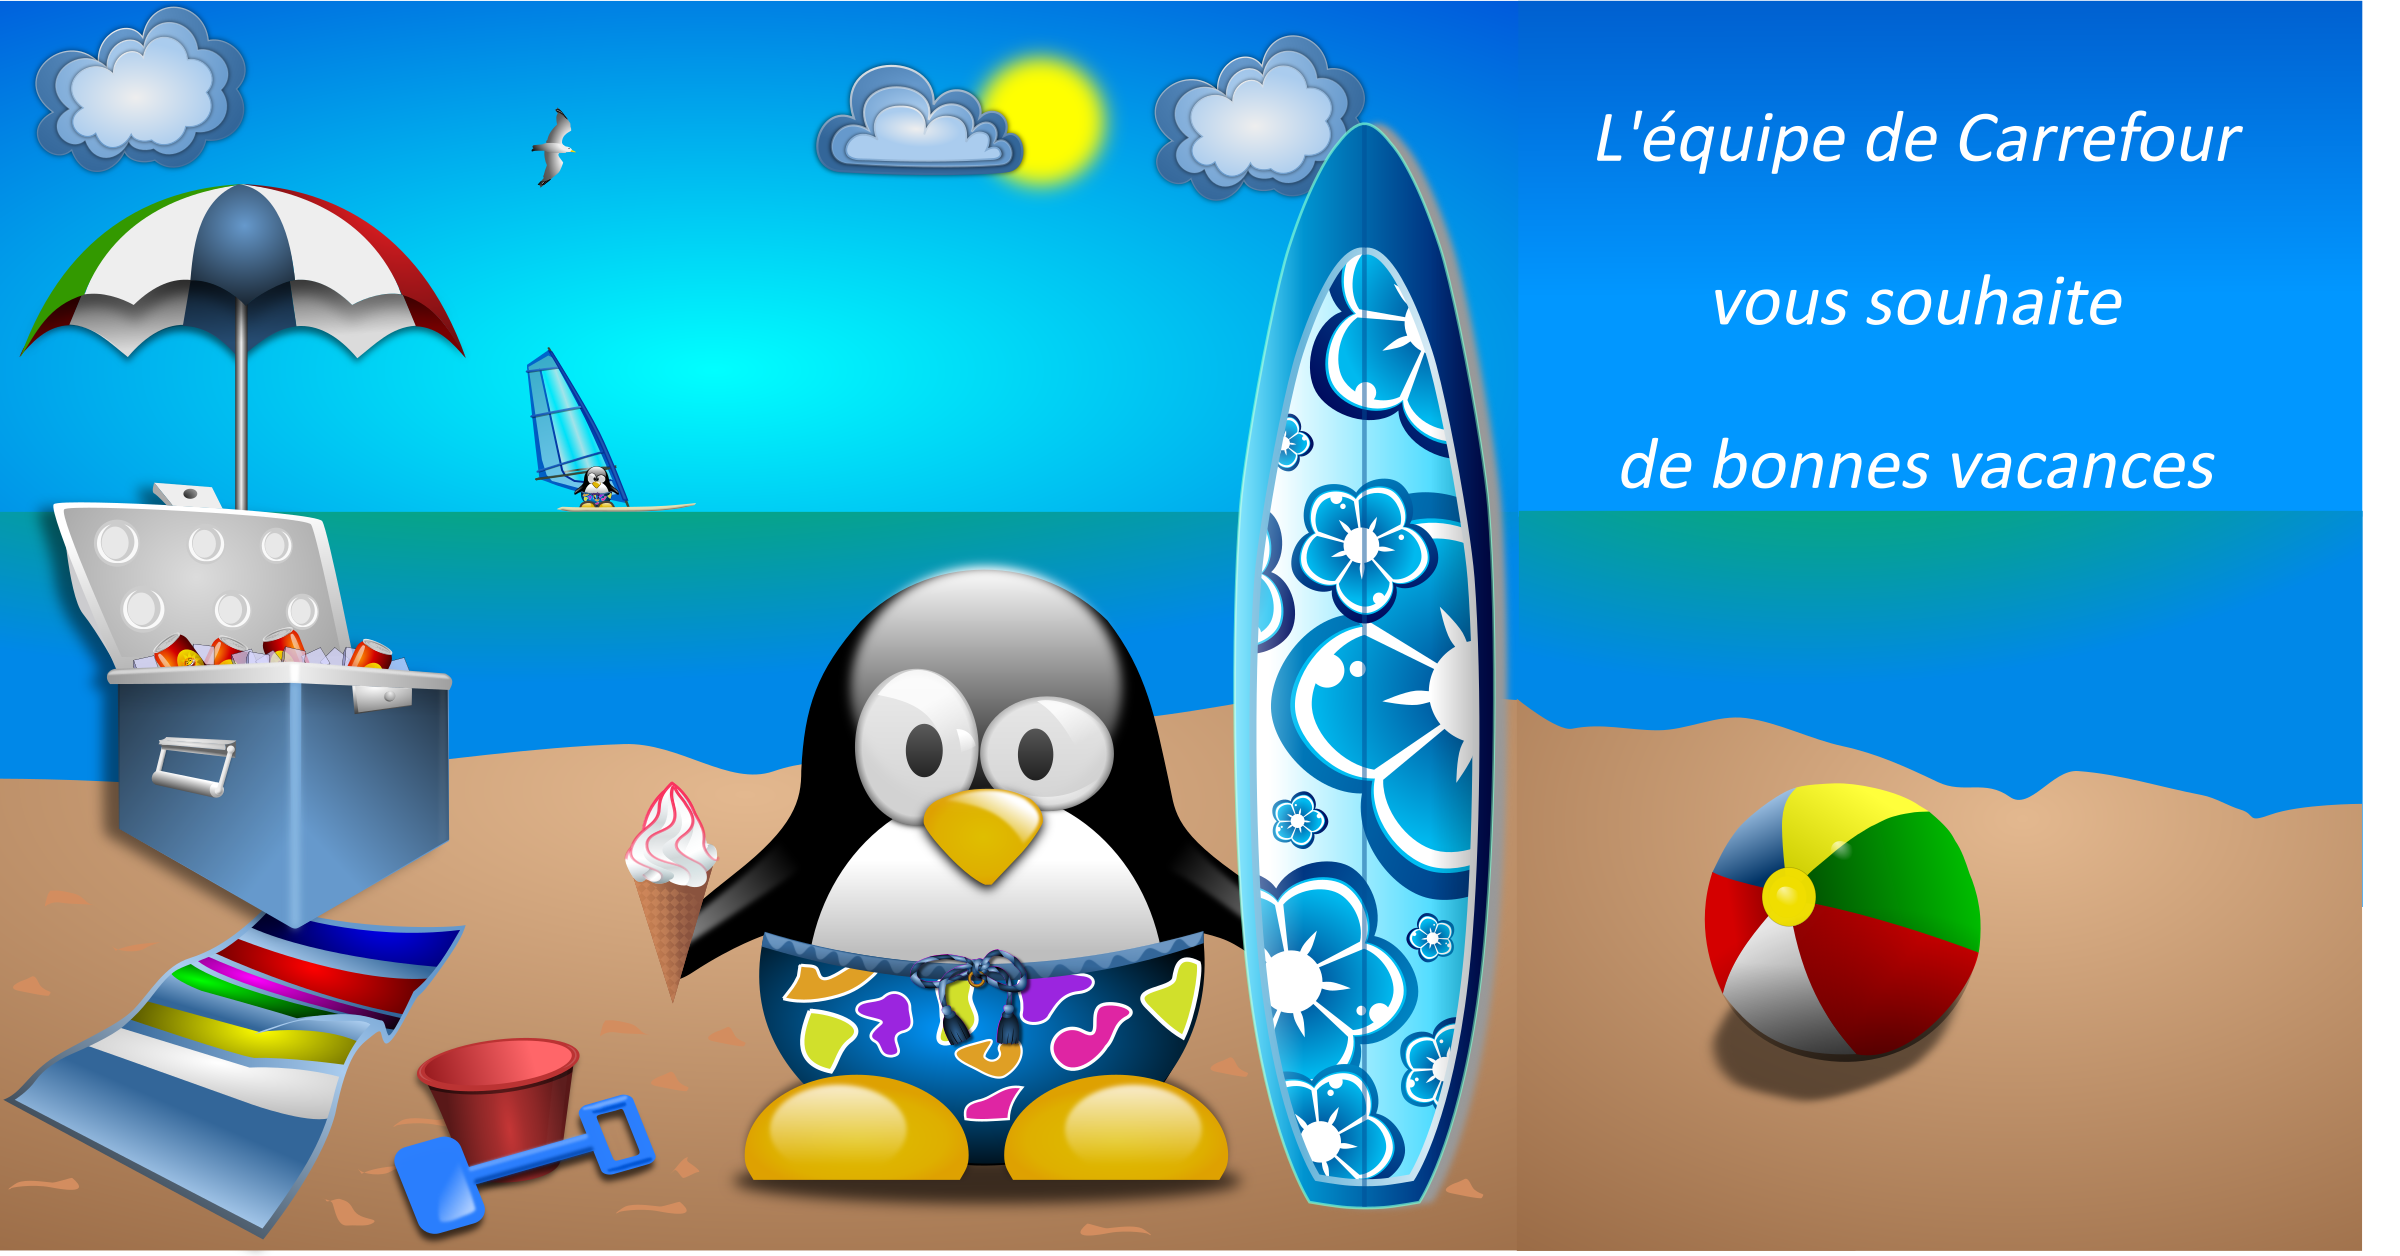 Tux-at-the-Beach-by-Merlin2525-remix-vacances by acotte